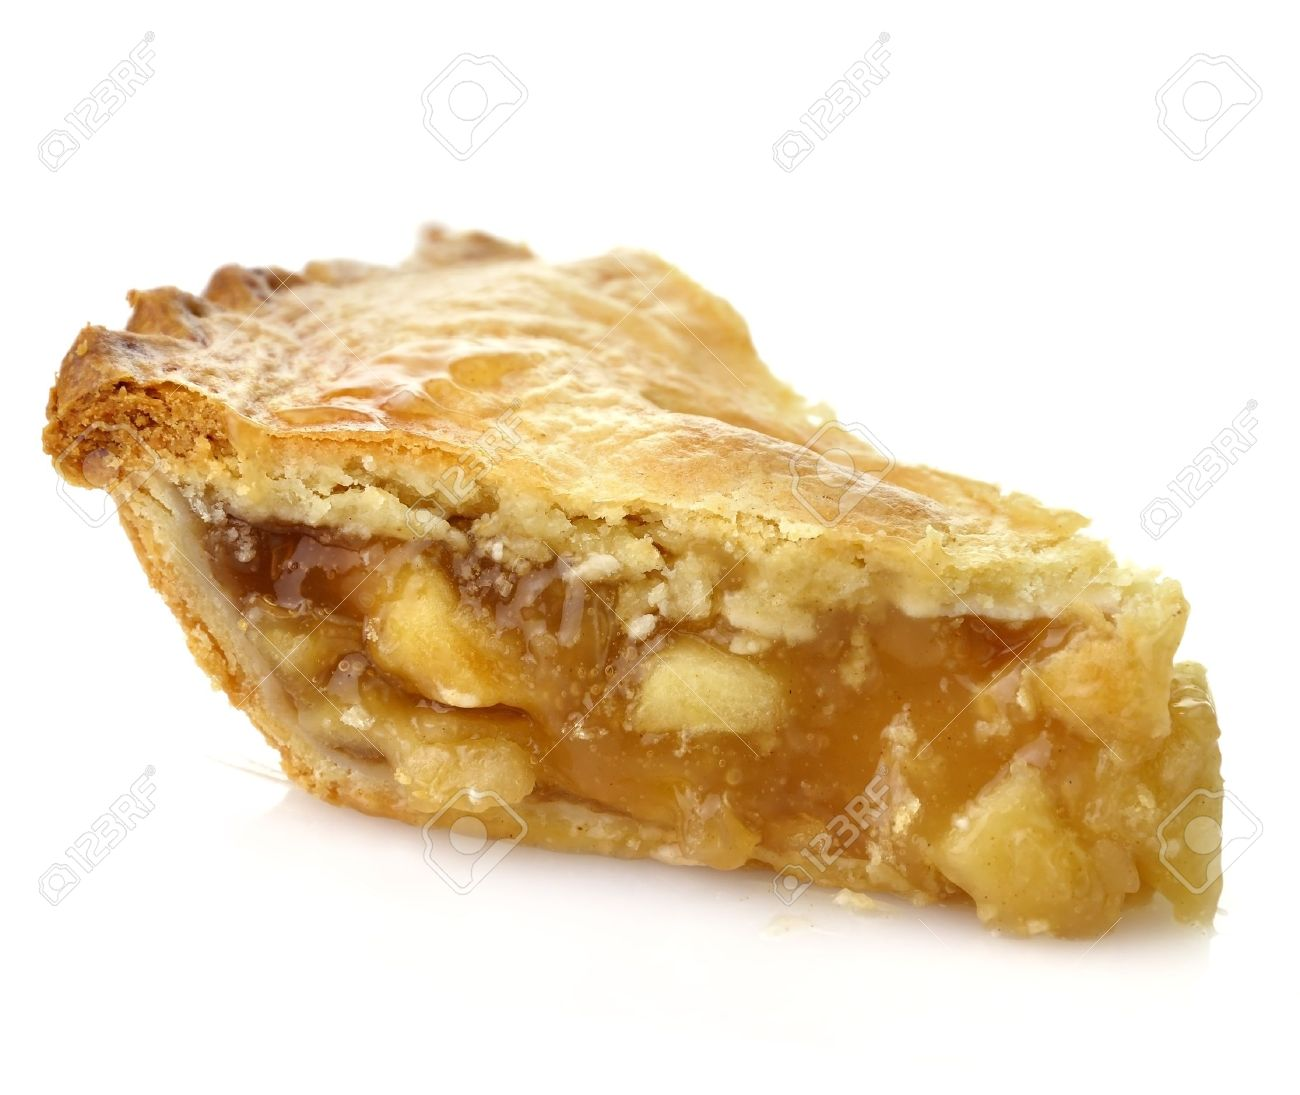 Image result for Pie Slice